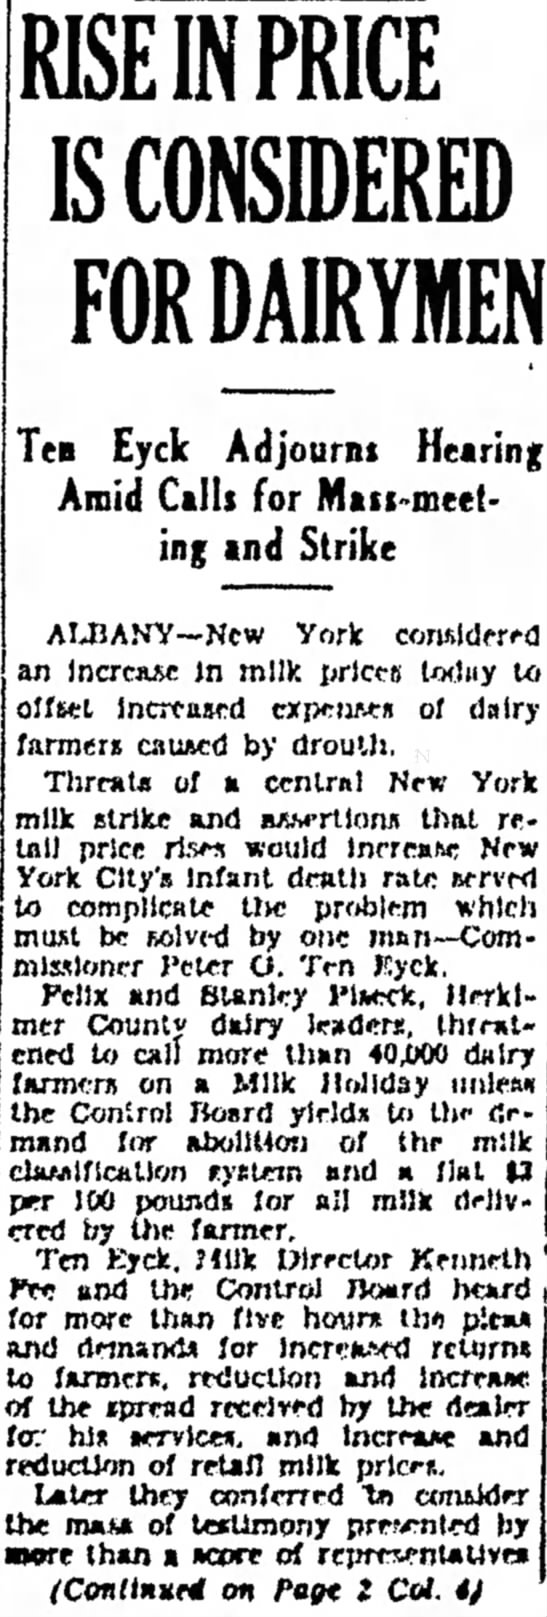 Rise In Price is Considered for Dairymen page 1 -